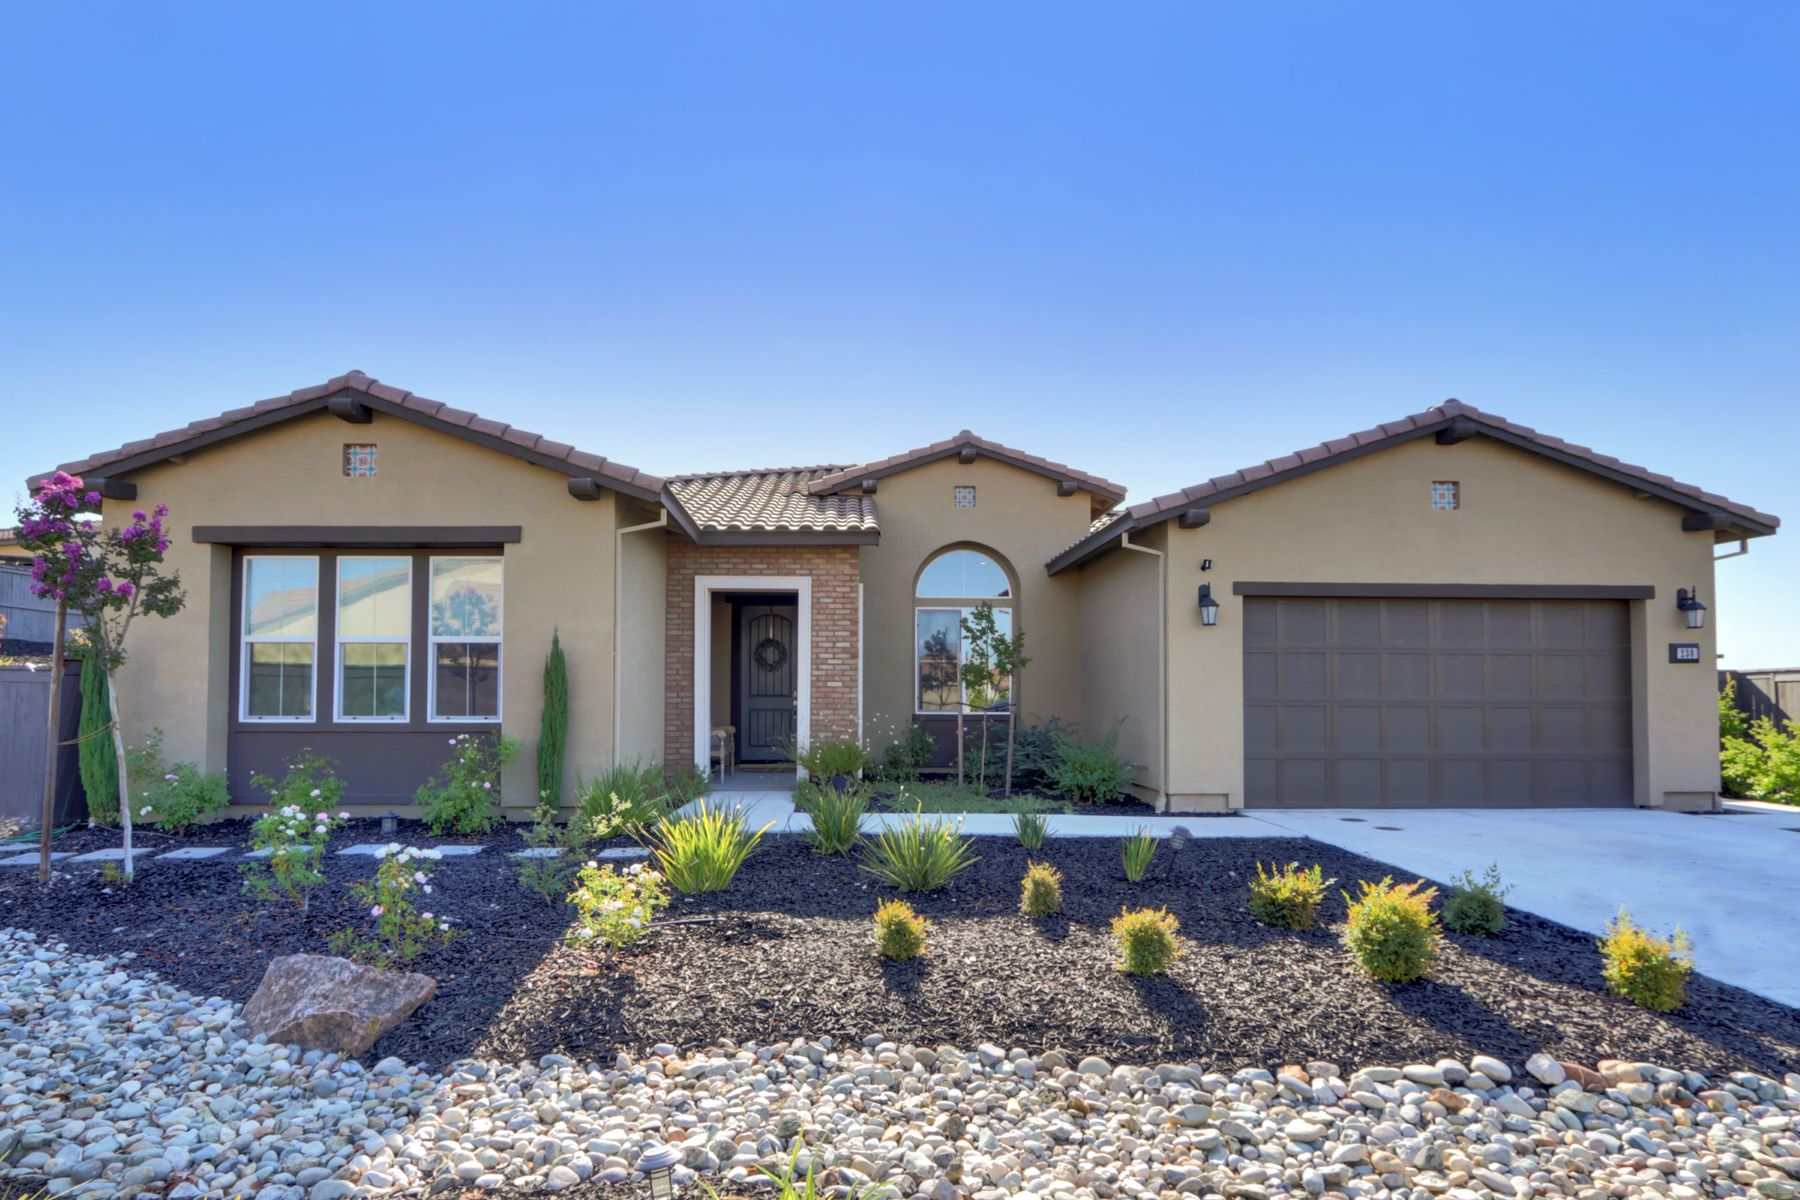 Single Family Homes for Active at 230 Corte Colinas Verdes, Lincoln, CA 95648 230 Corte Colinas Verdes Lincoln, California 95648 United States